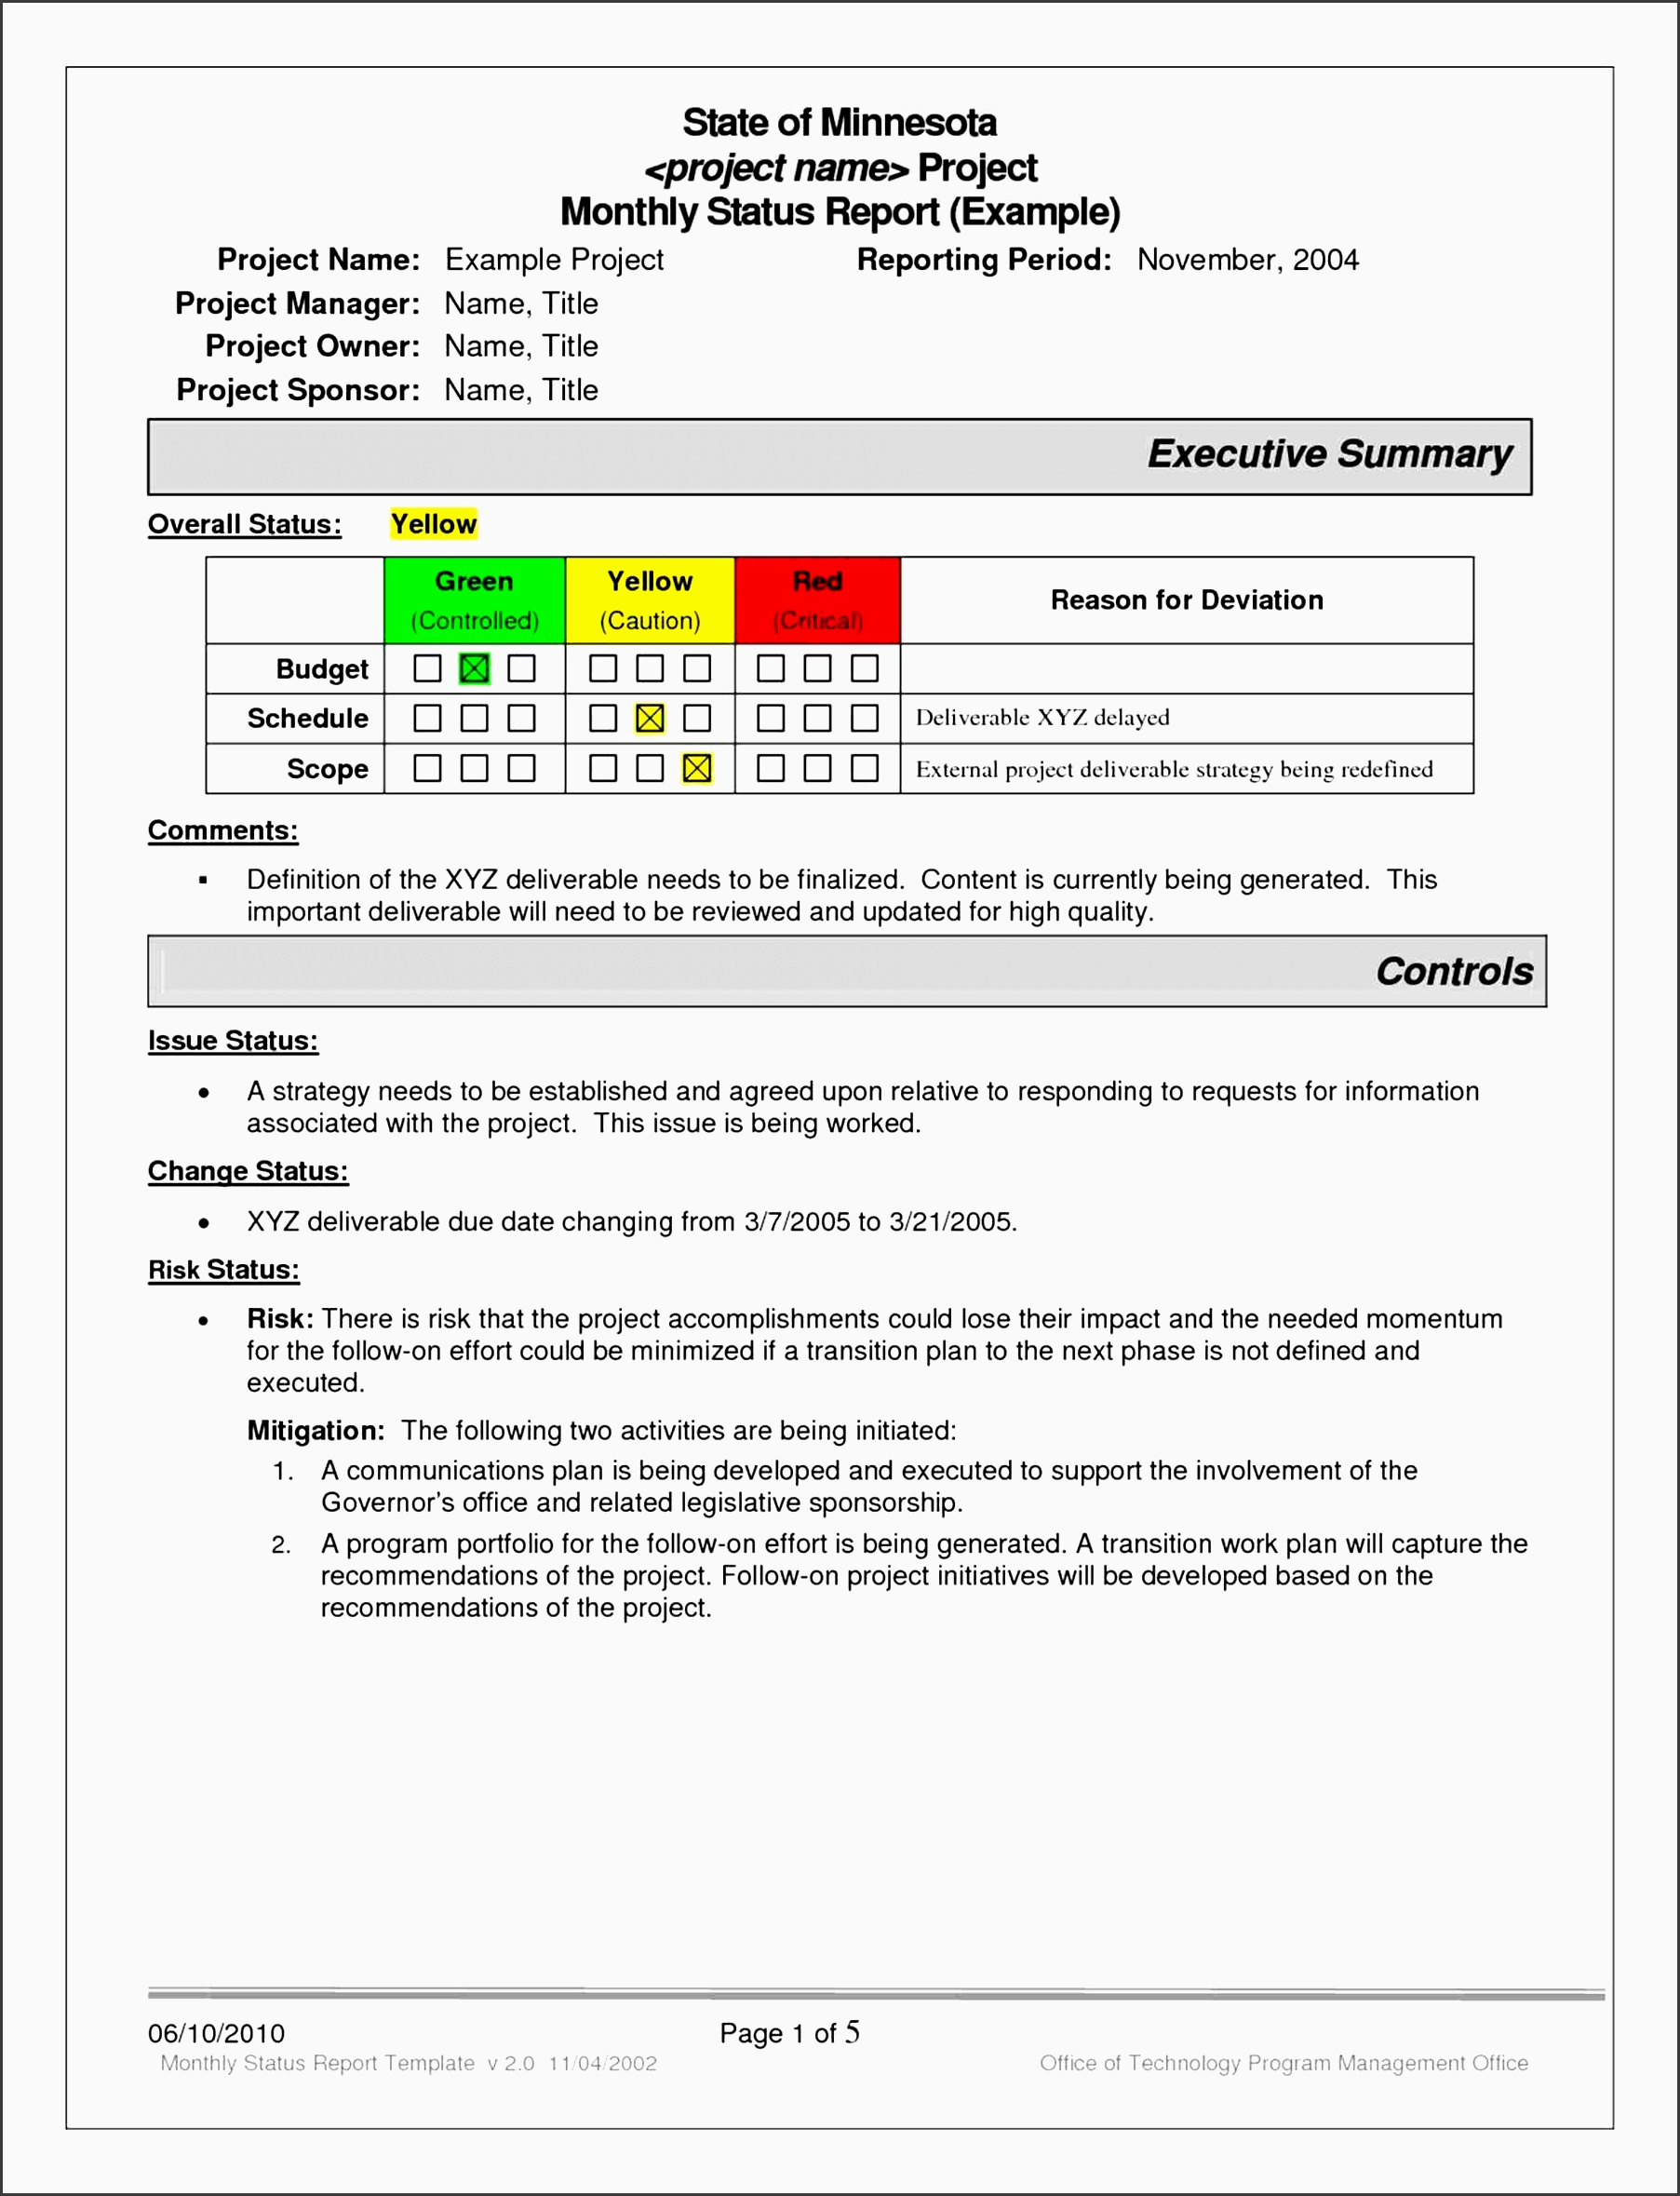 excel status report template cyberuse activity excel u printable editable blank activity project management status report